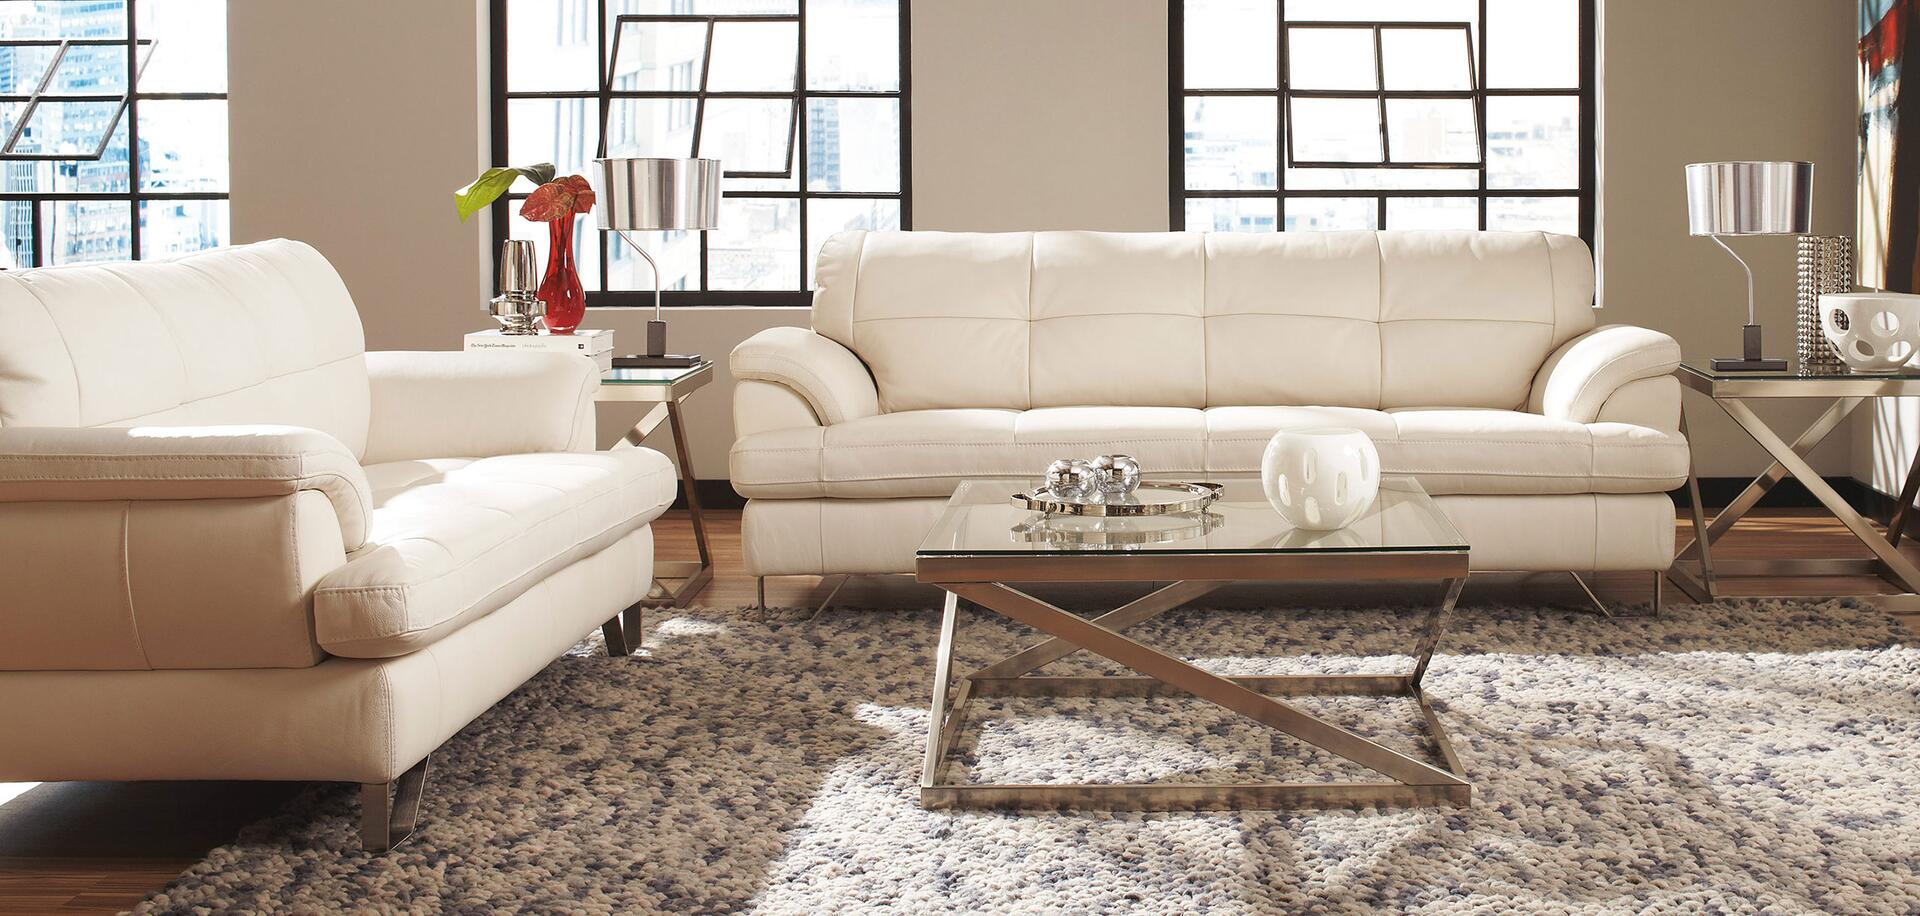 Signature design by ashley gunter sofa shown with matching loveseat